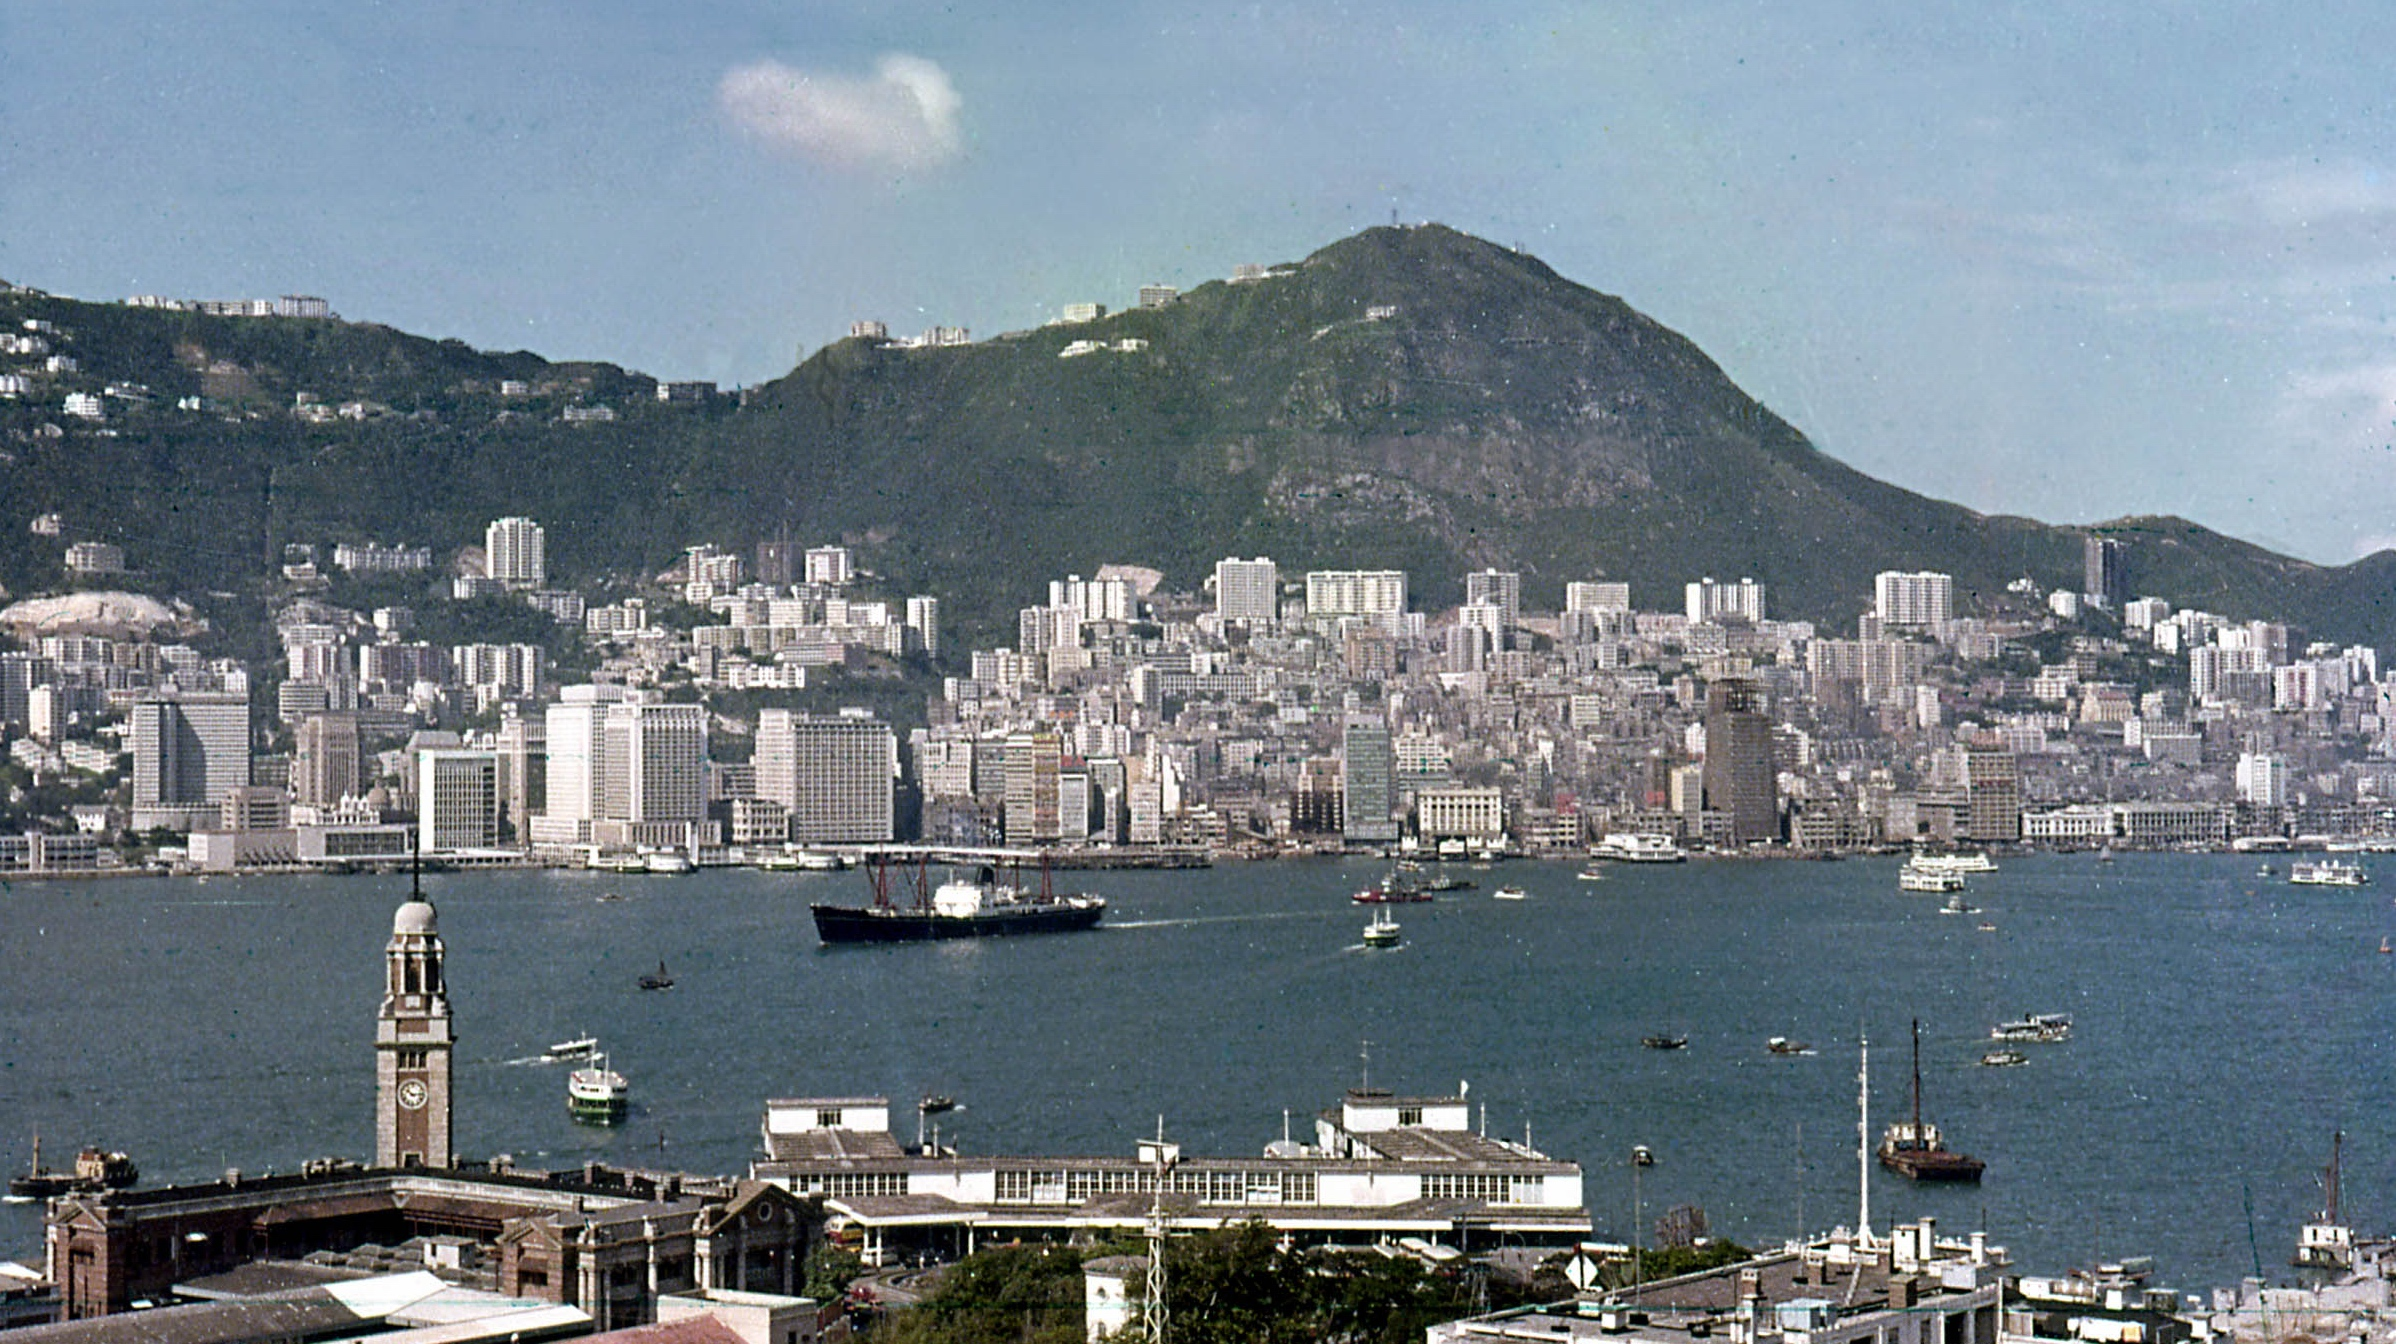 41_Pt_I_Ch_6_The_Victoria_Harbour_viewed_from_Kowloon_1965